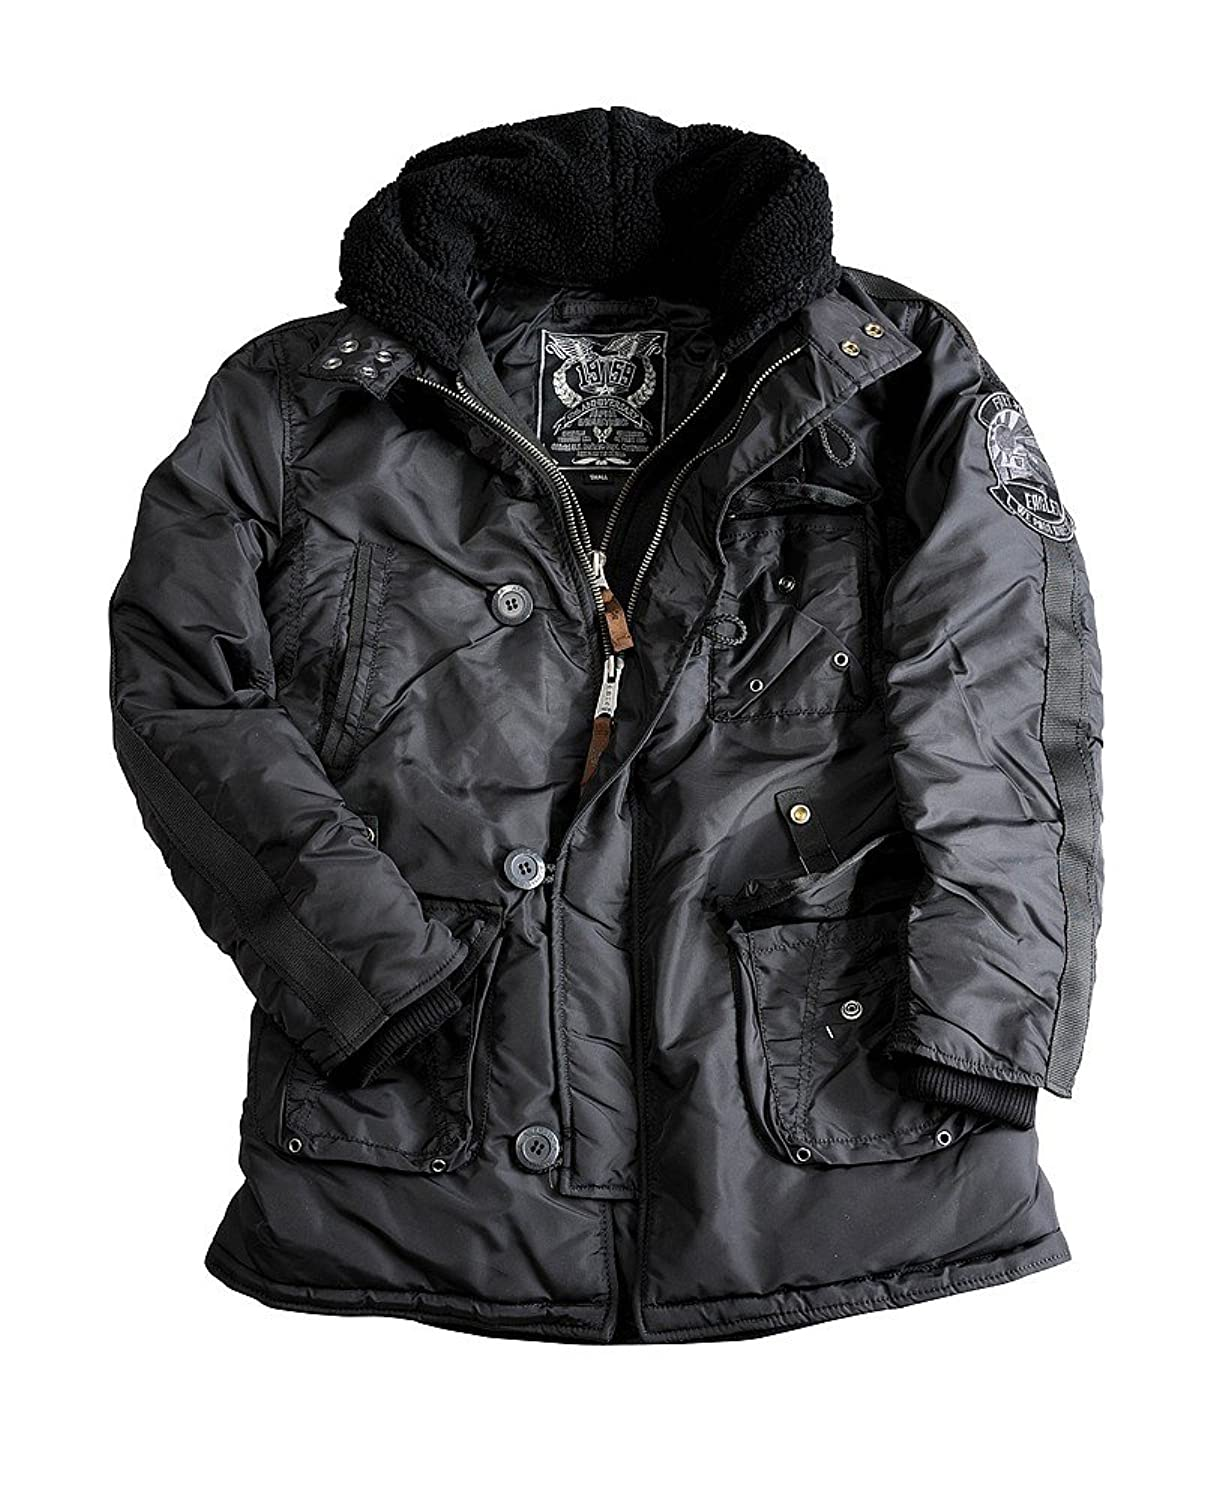 Alpha Industries Cobbs II Jacket Women 193018